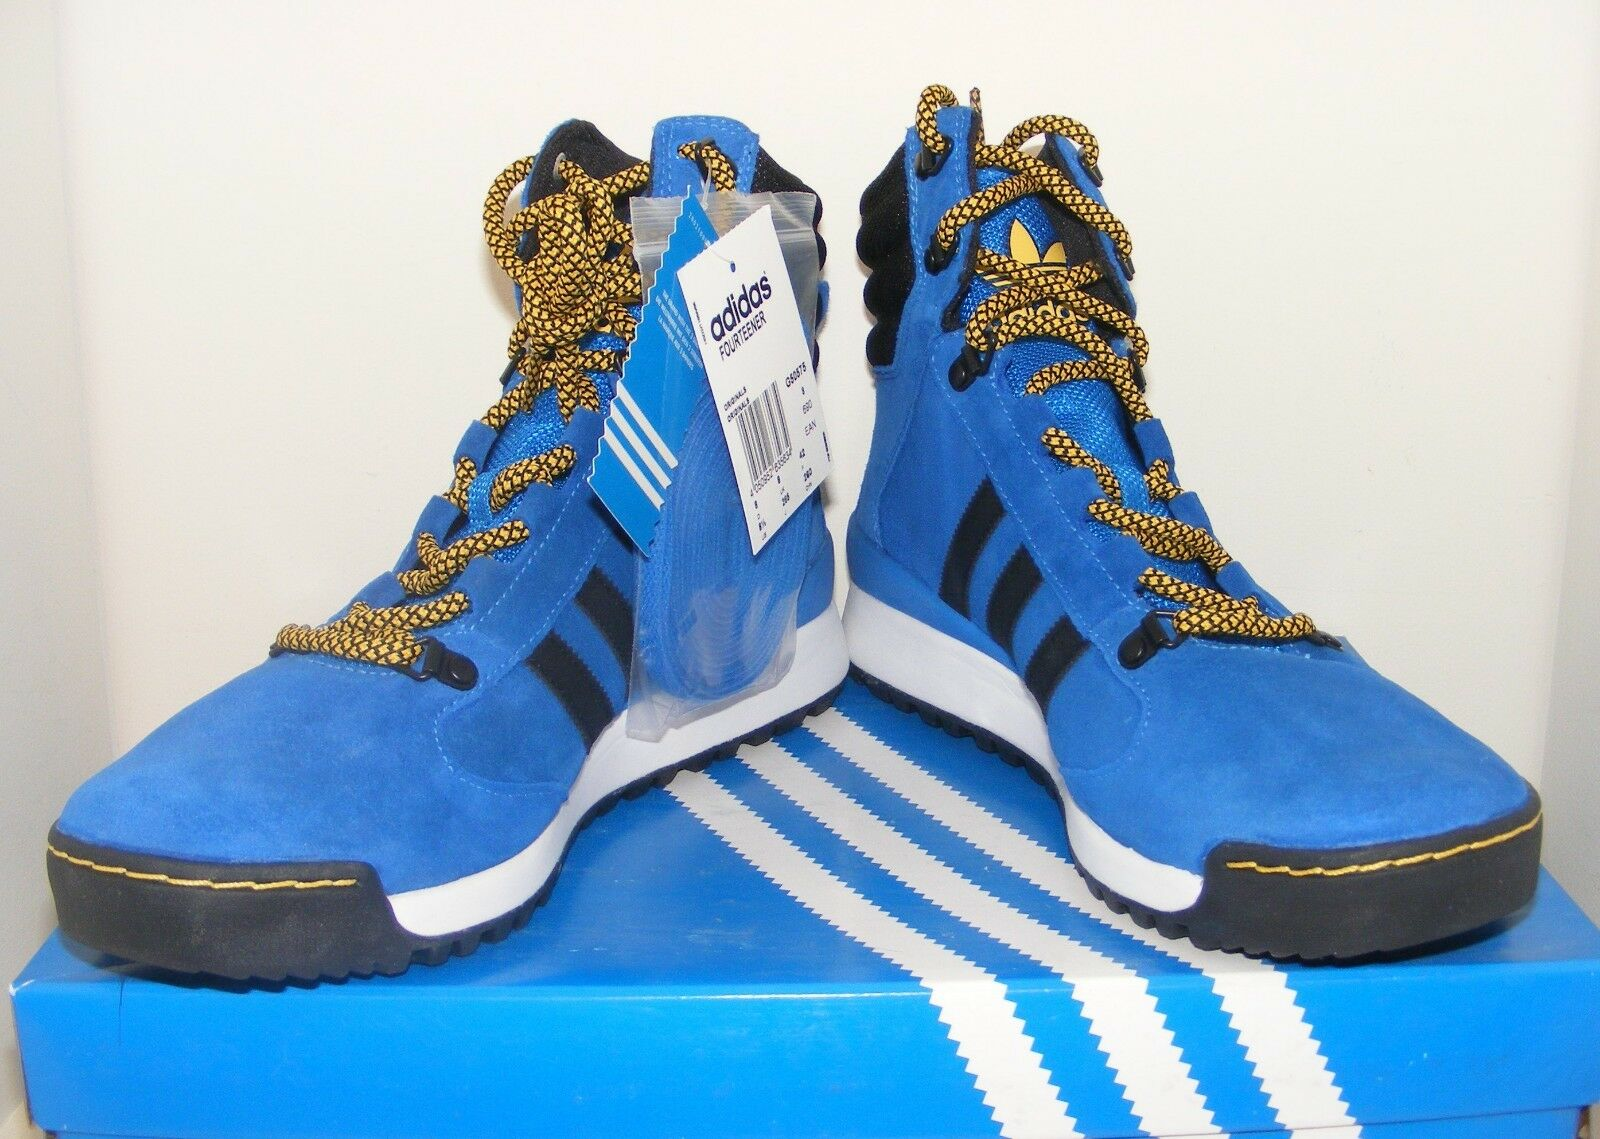 ADIDAS Originals FOURTEENER All Suede Hiking Walking Stiefel UK 8 2011 Rare BNIB